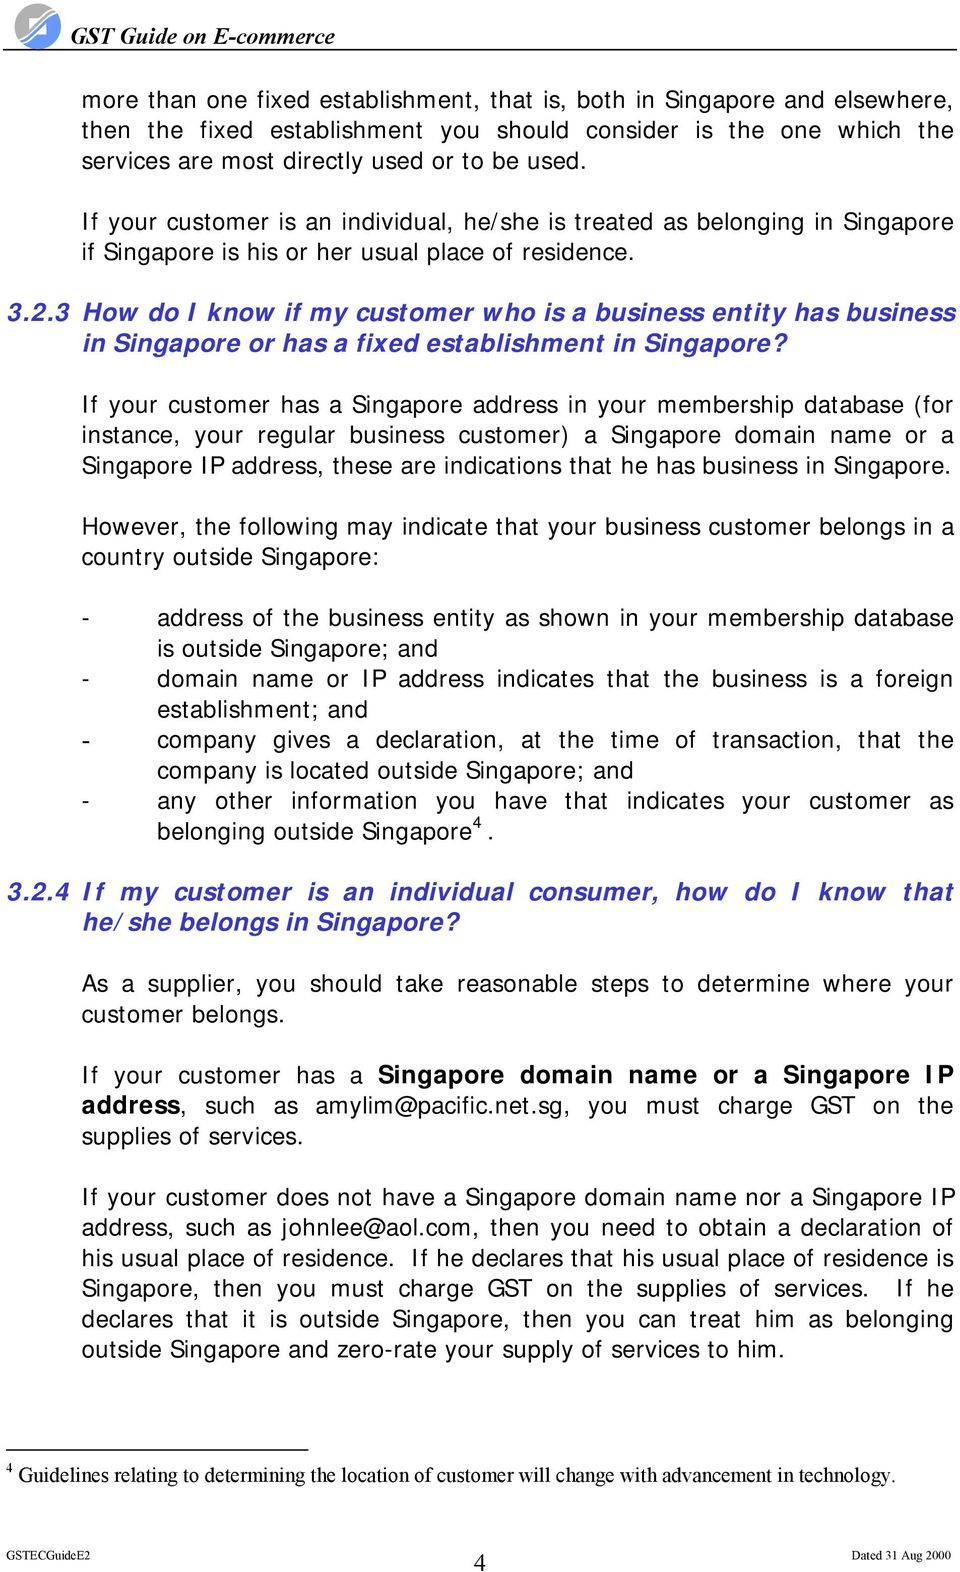 3 How do I know if my customer who is a business entity has business in Singapore or has a fixed establishment in Singapore?